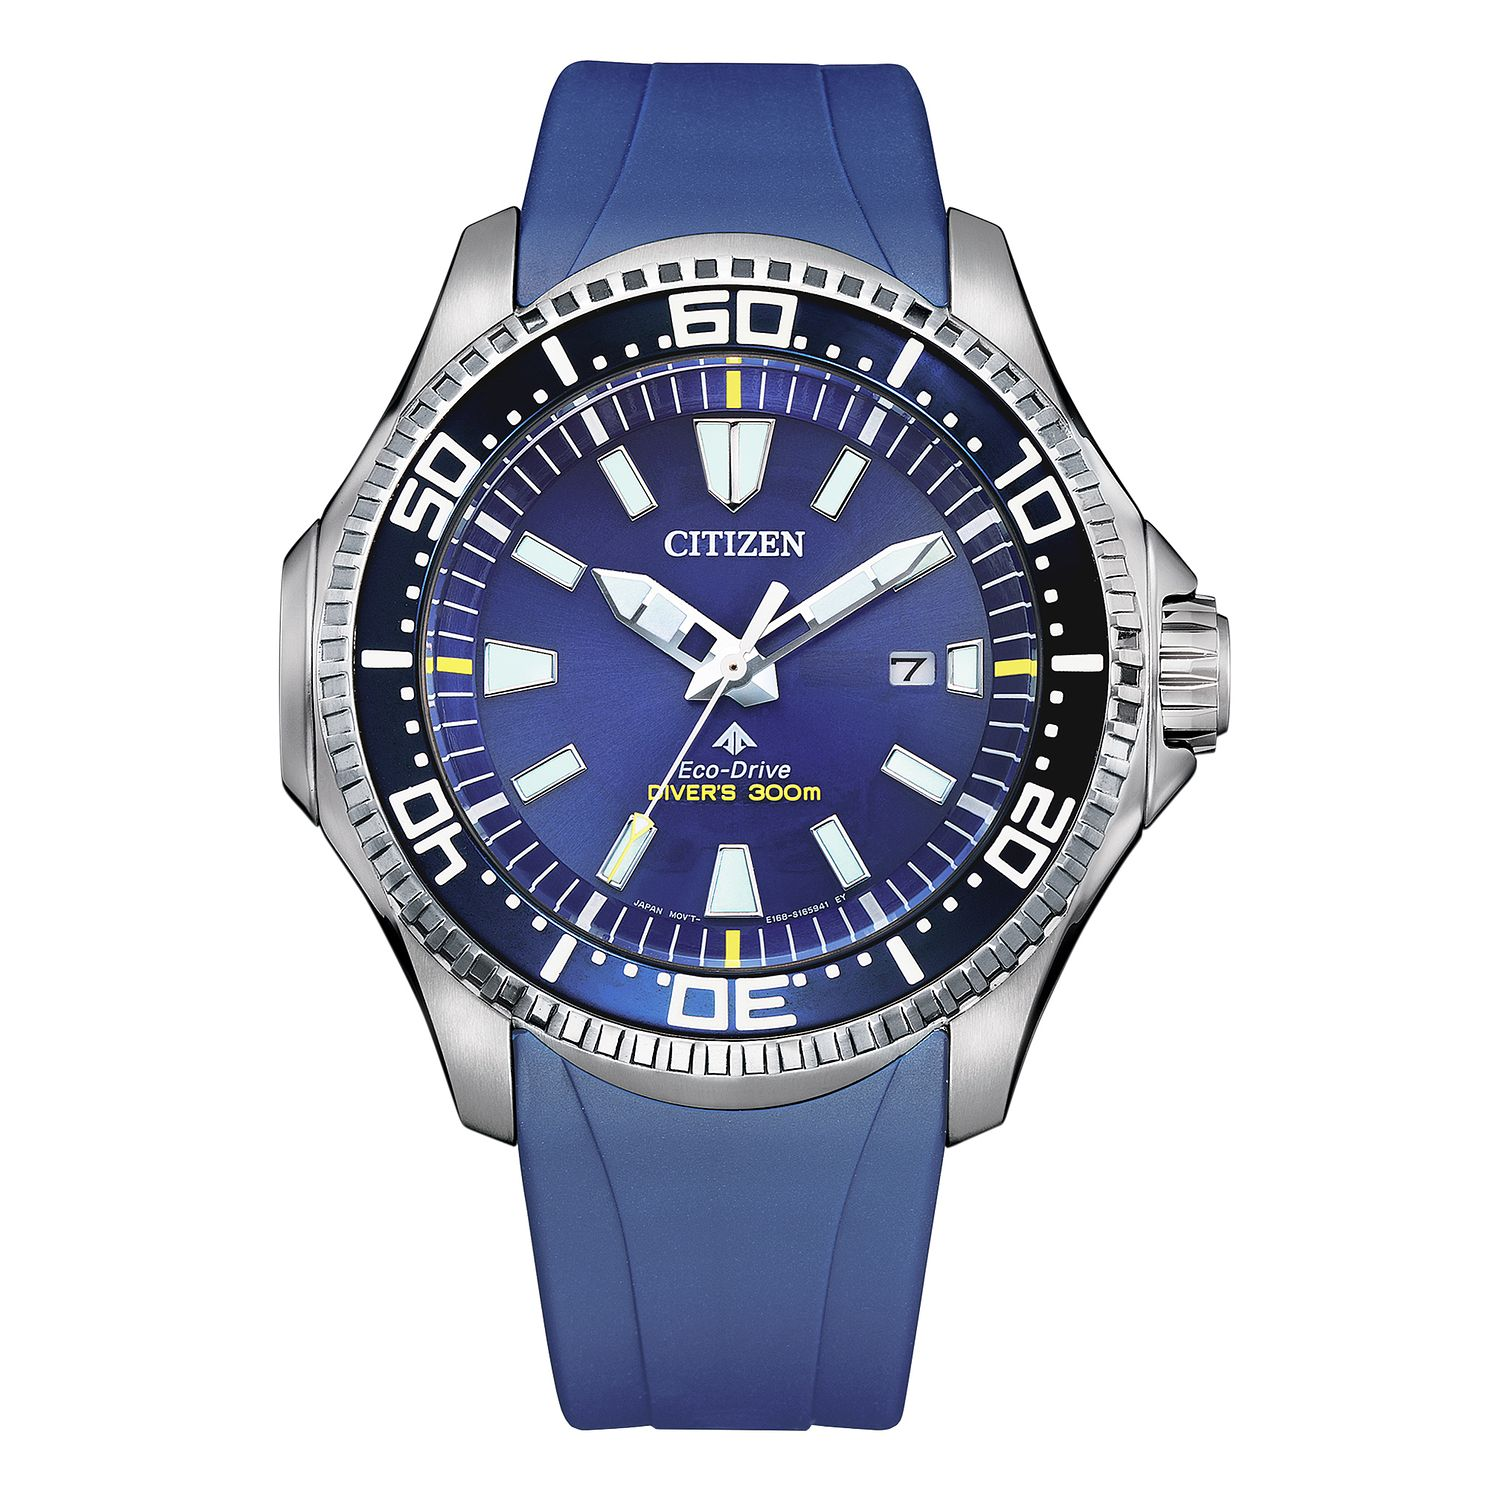 Citizen Promaster Diver Blue Rubber Strap Watch - Product number 1016903